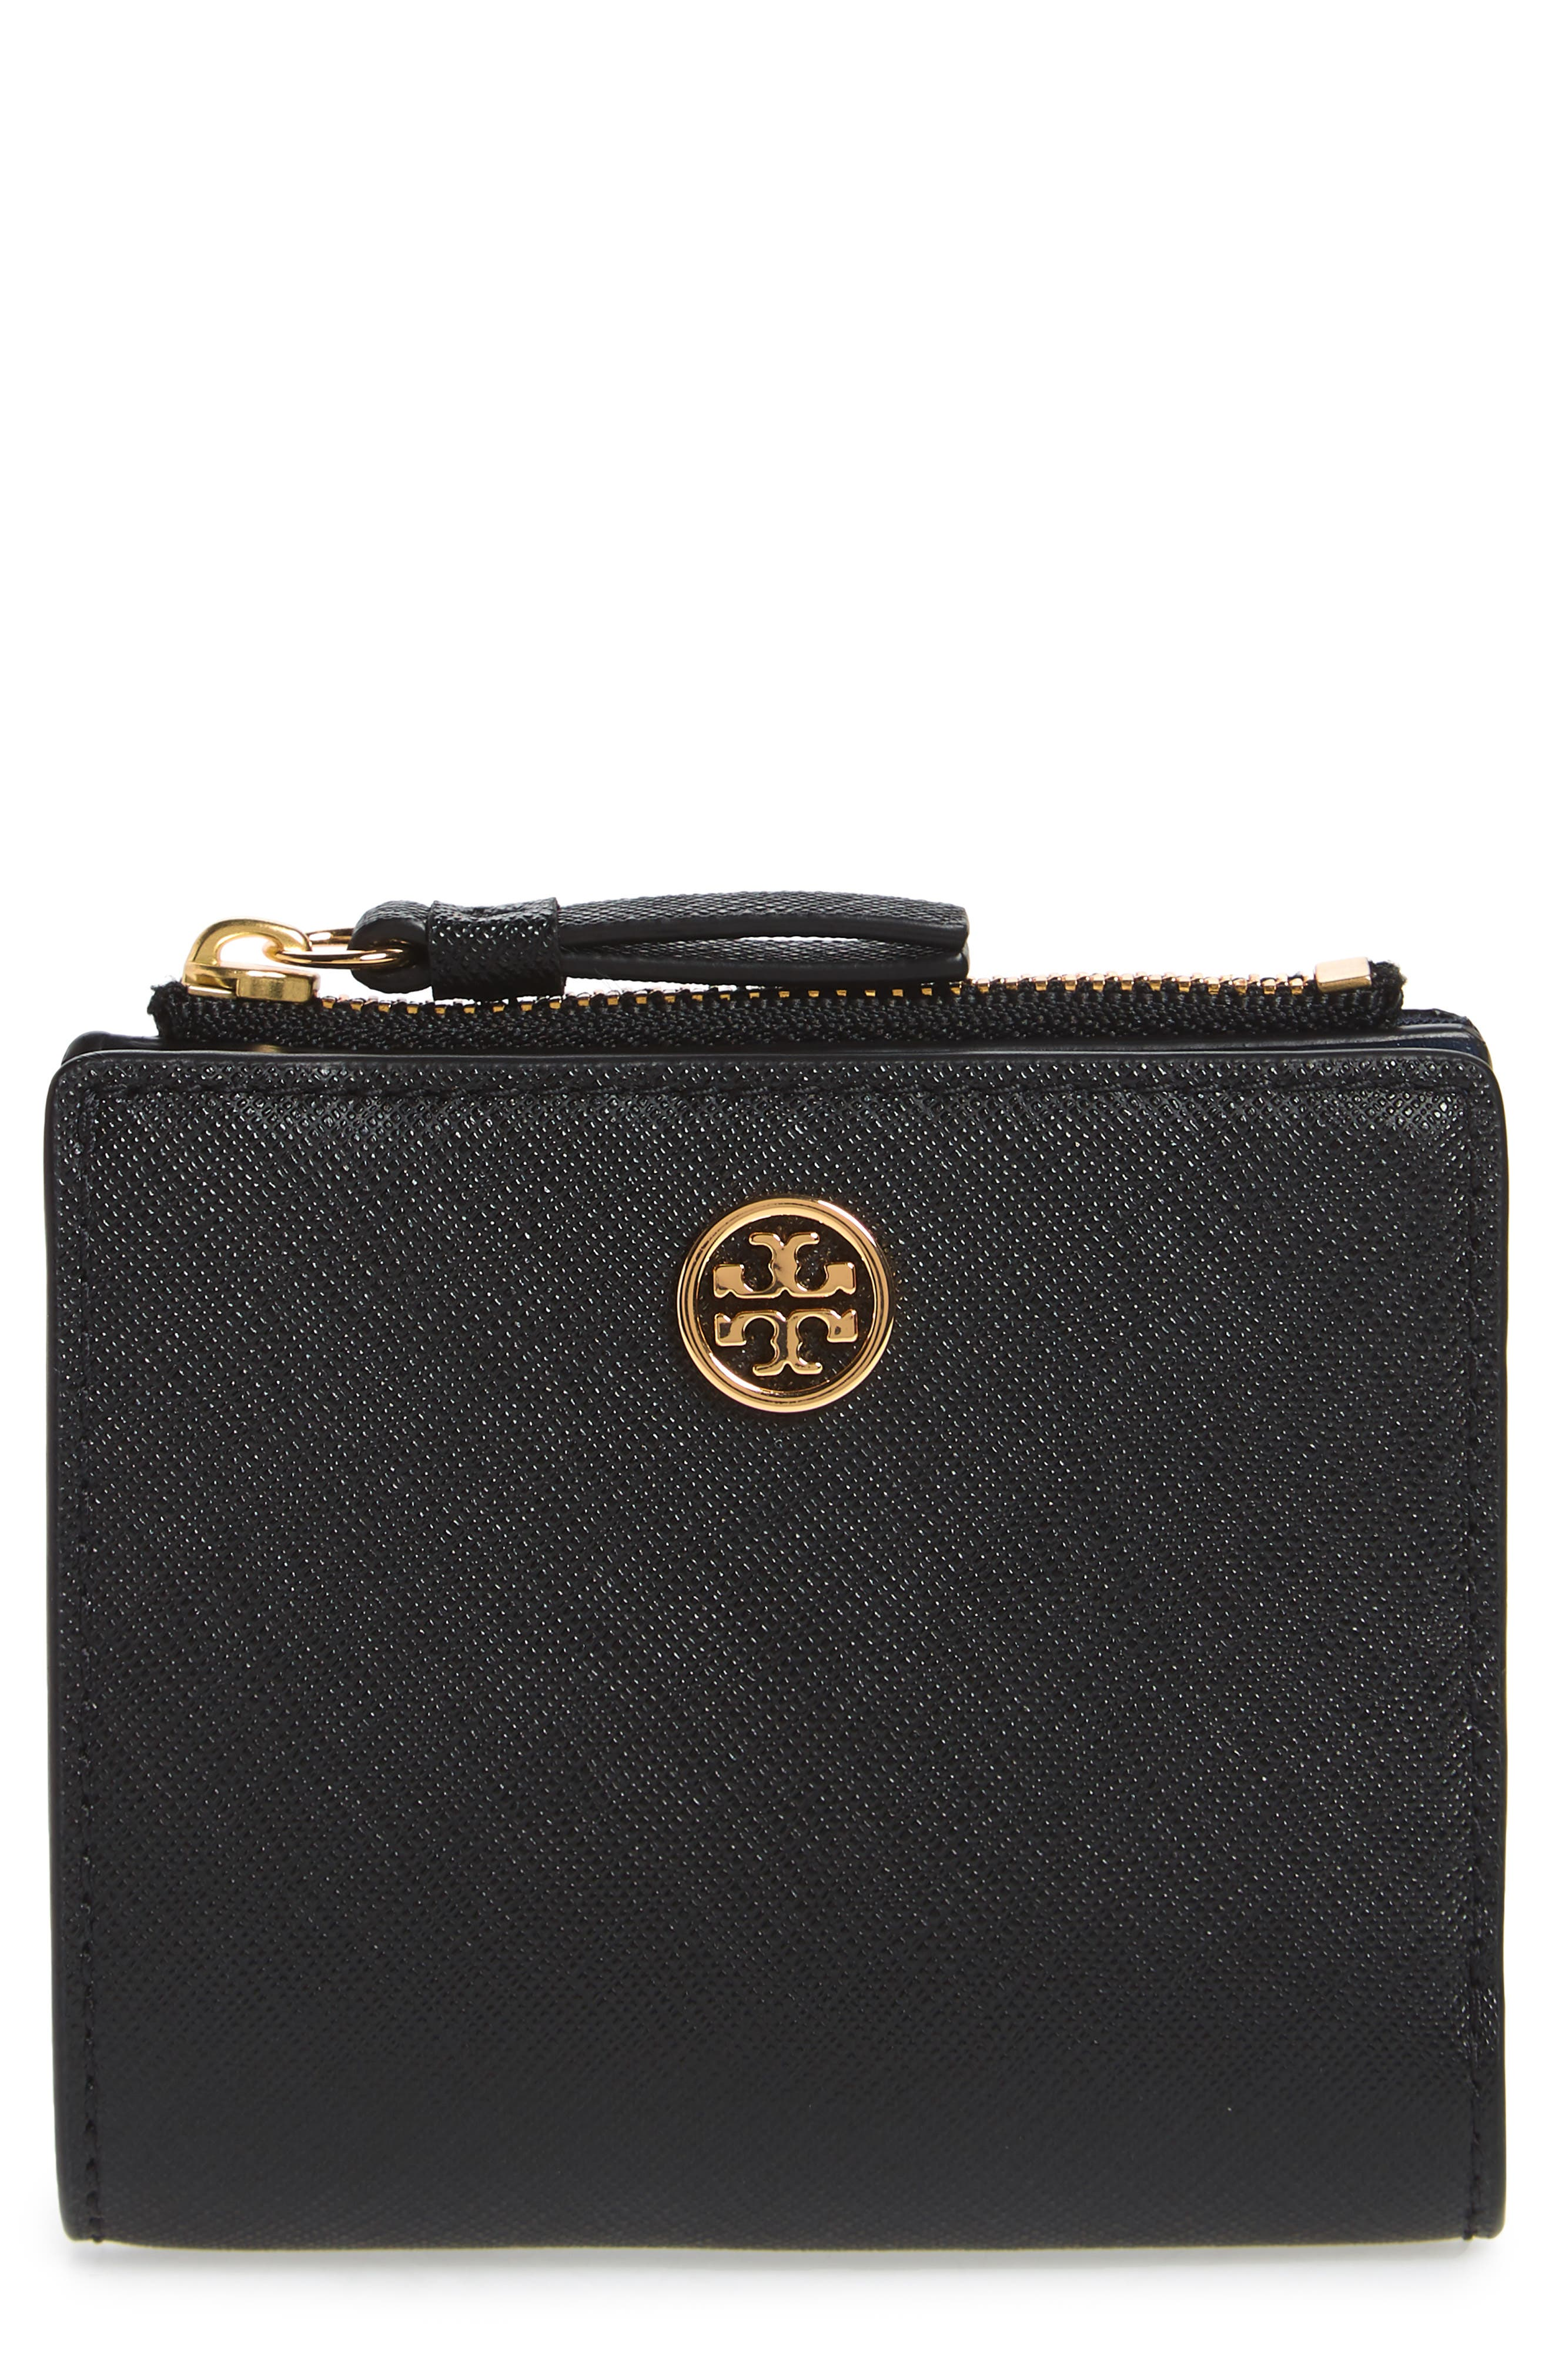 TORY BURCH Mini Robinson Wallet Leather Bifold Wallet, Main, color, BLACK / ROYAL NAVY